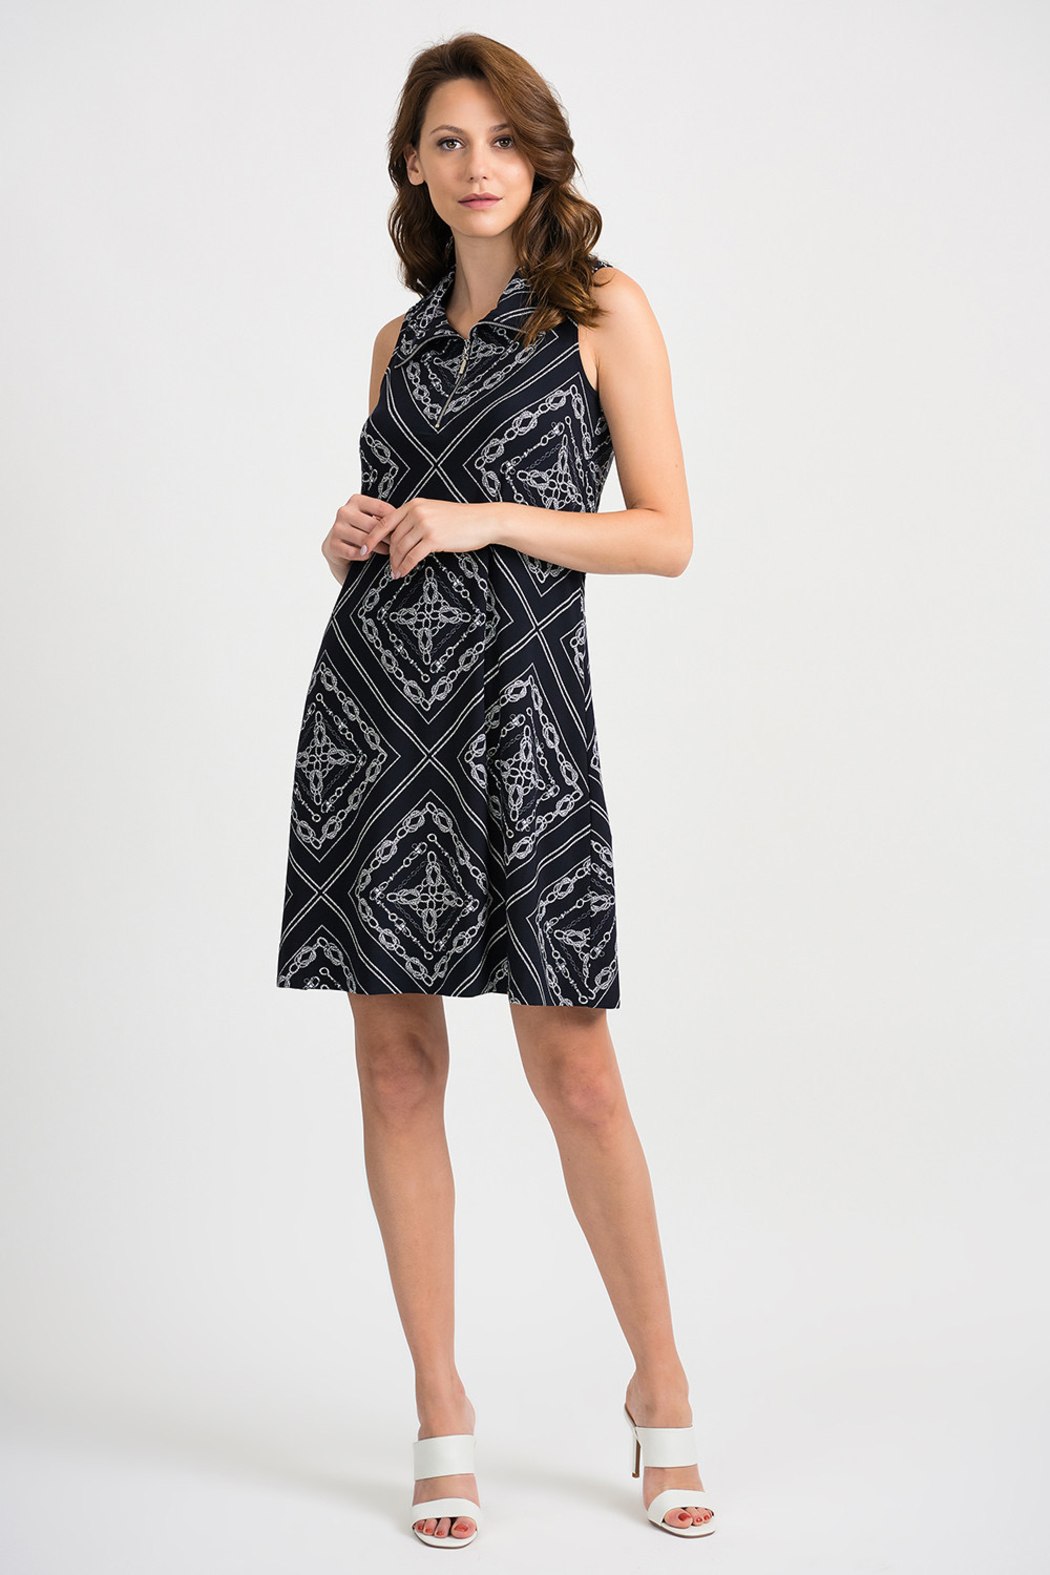 Joesph Ribkoff Midnight and vanilla collared dress - Main Image